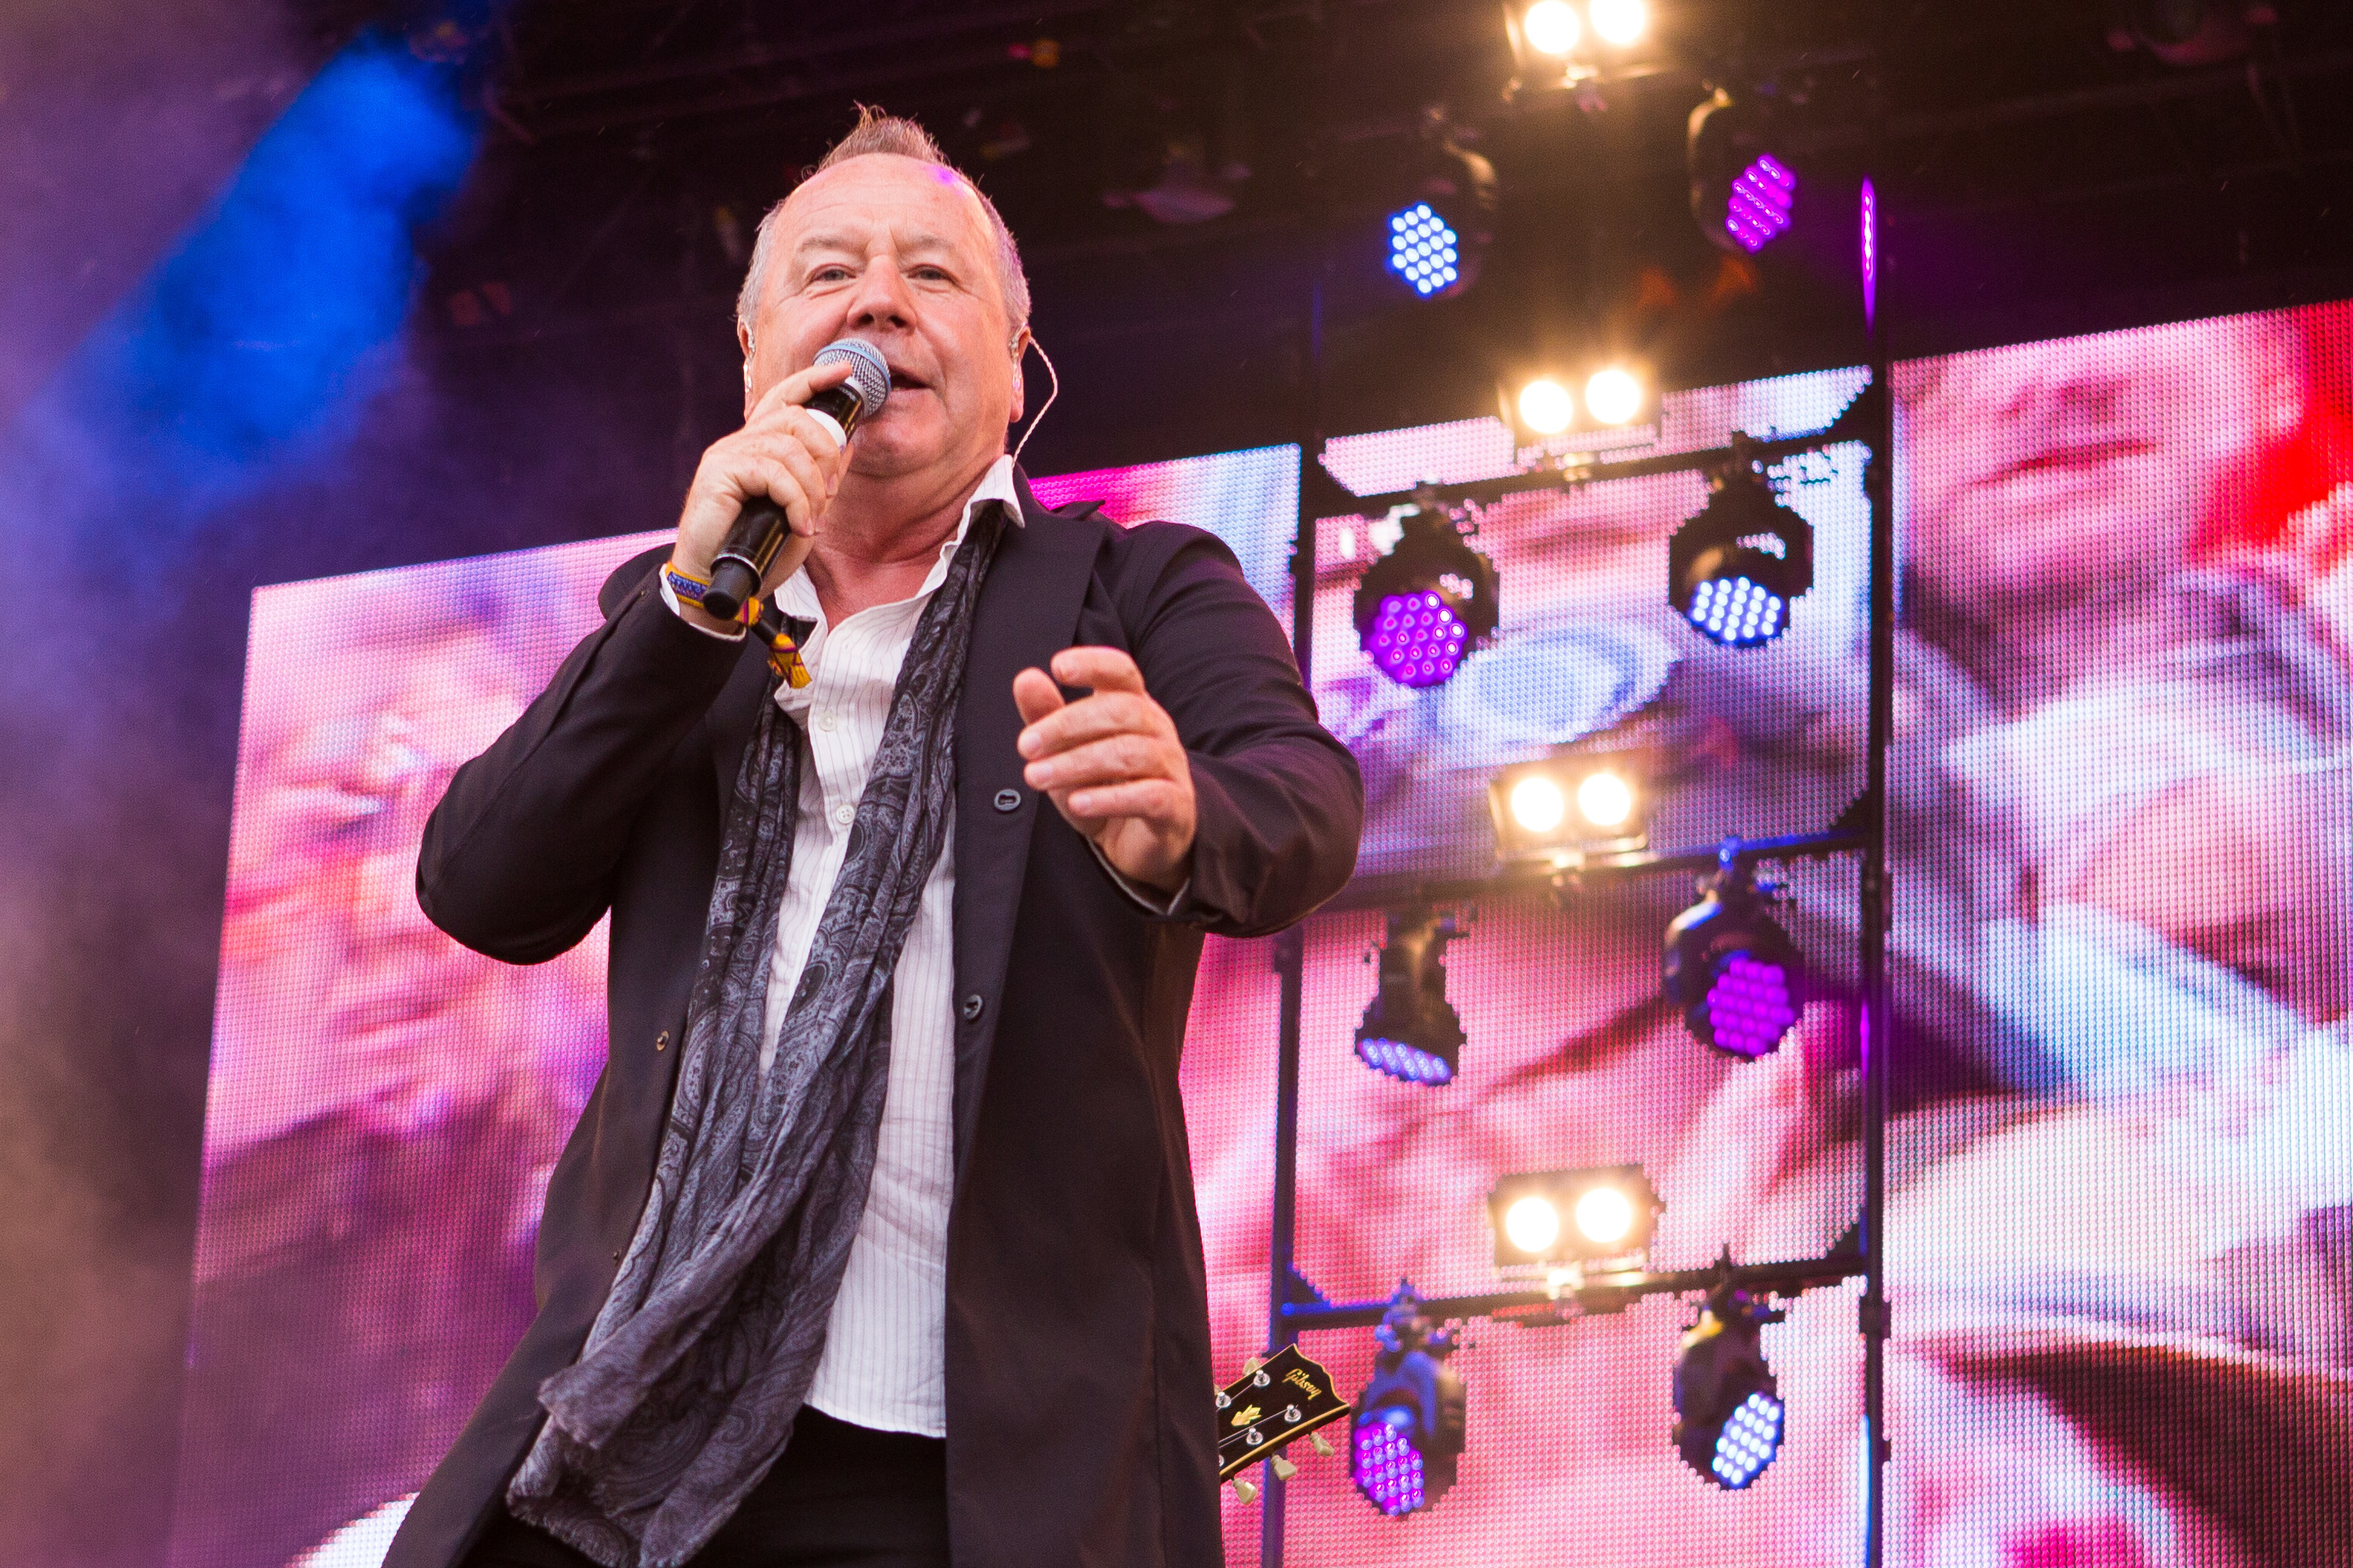 Simple Minds very own Jim Kerr